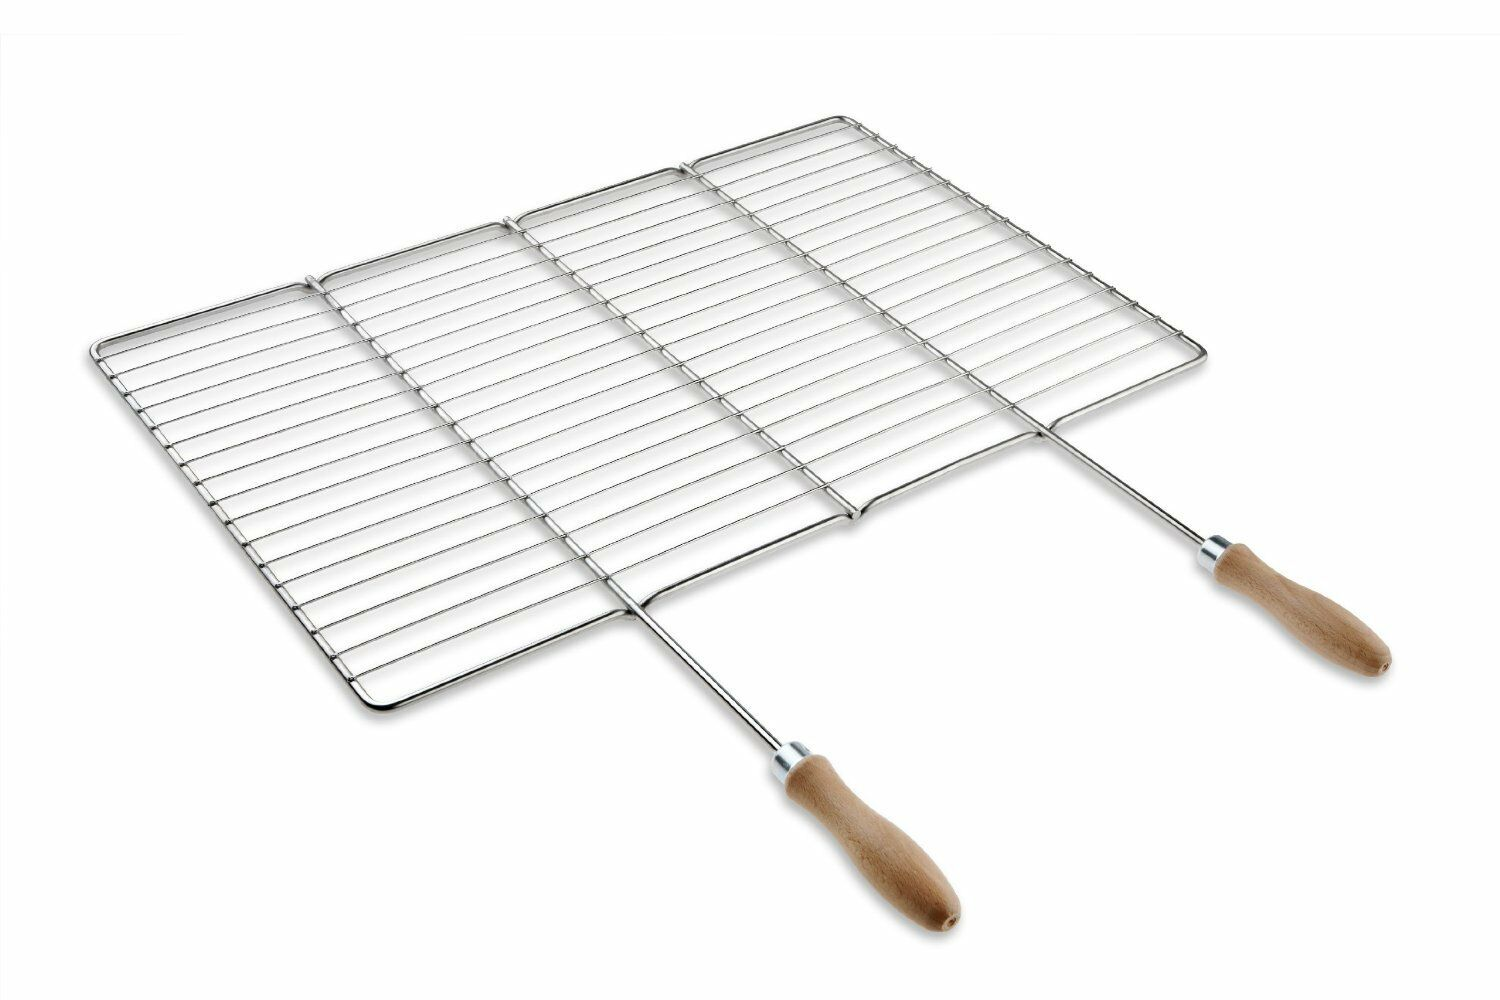 Stainless steel cooking and grill grate 58,5x30cm